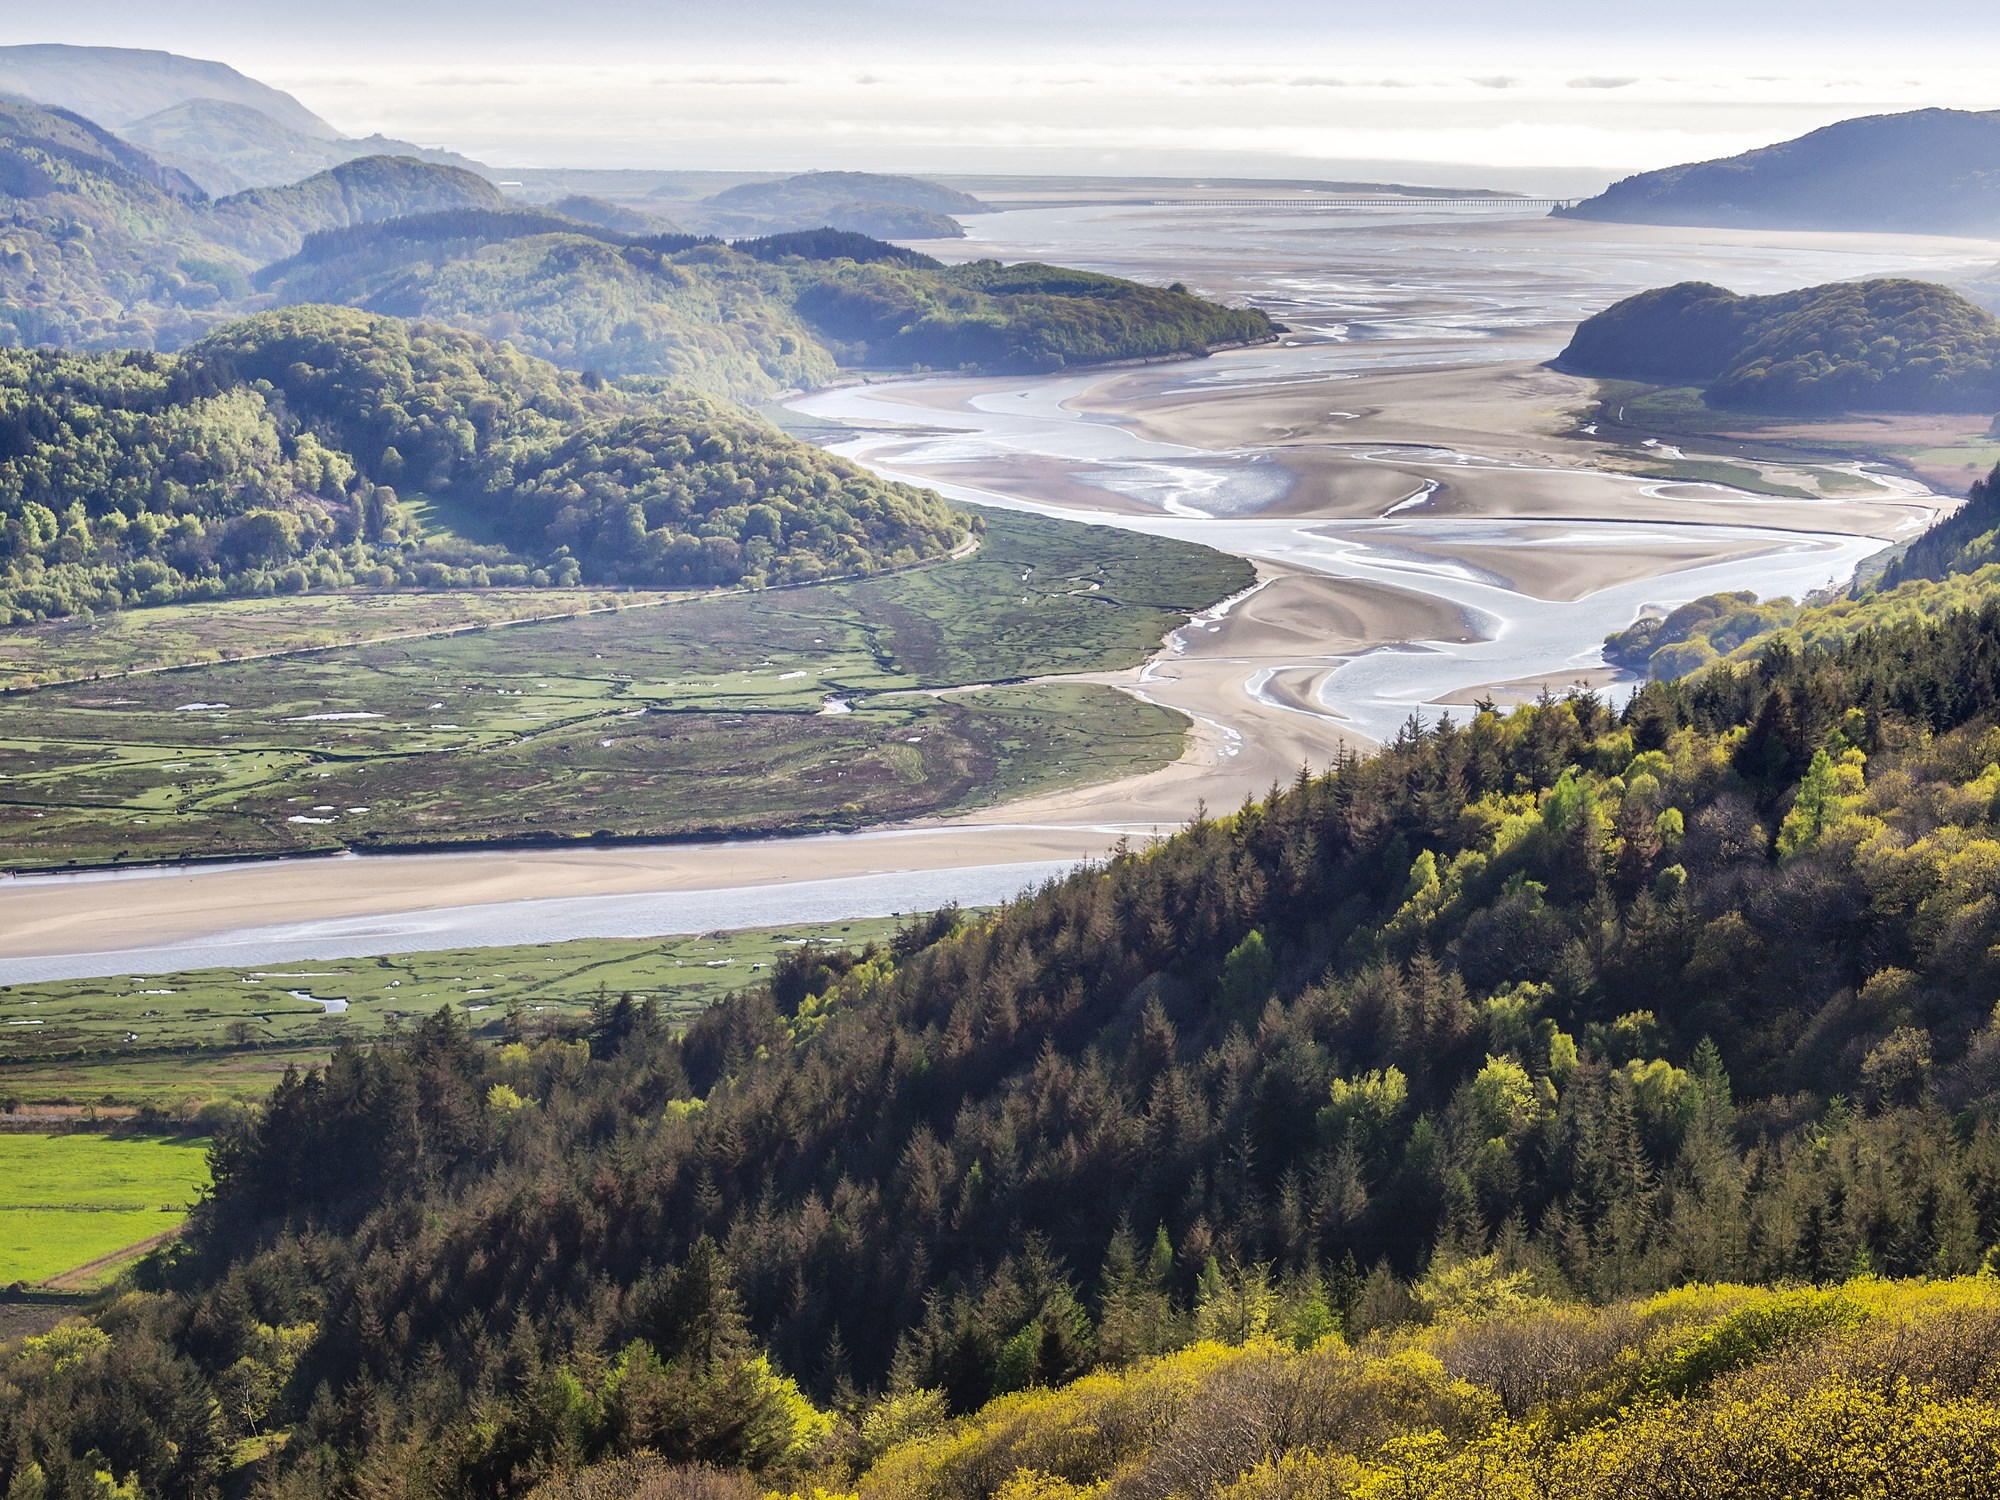 View over the Mawddach Estuary near Barmouth